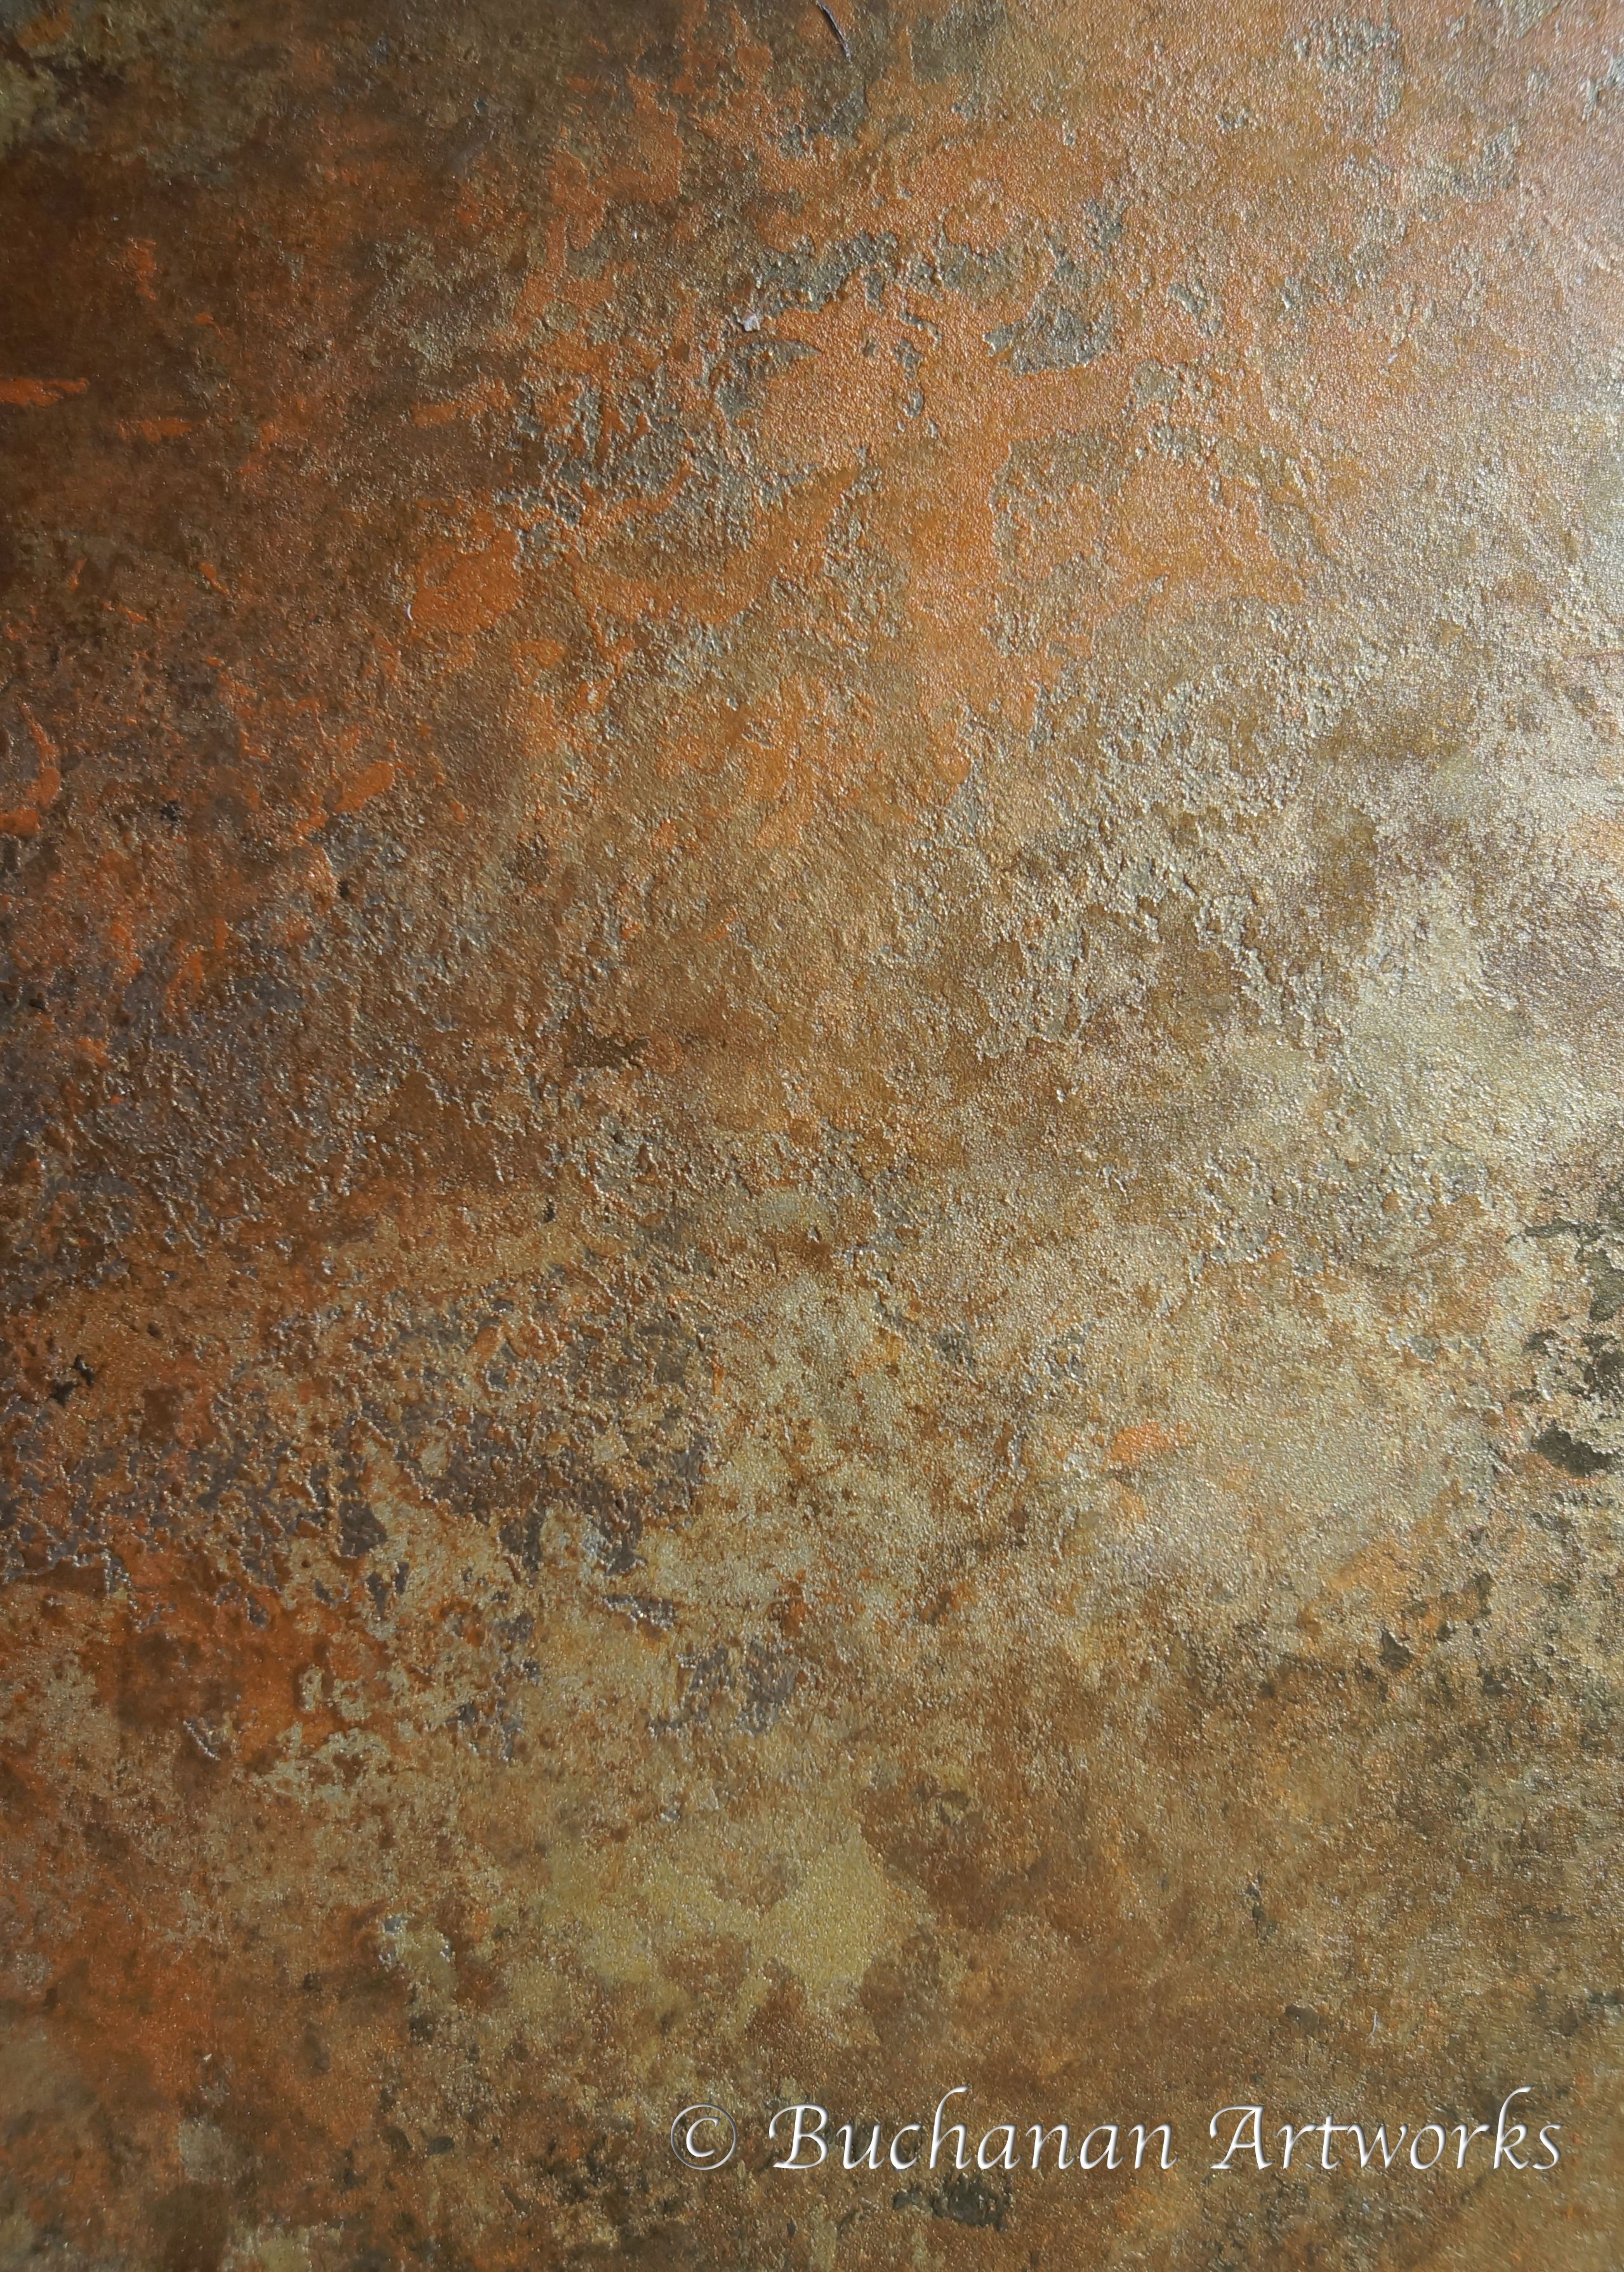 Copper Canyon - Another finish that is smooth on your walls but looks heavily textured!